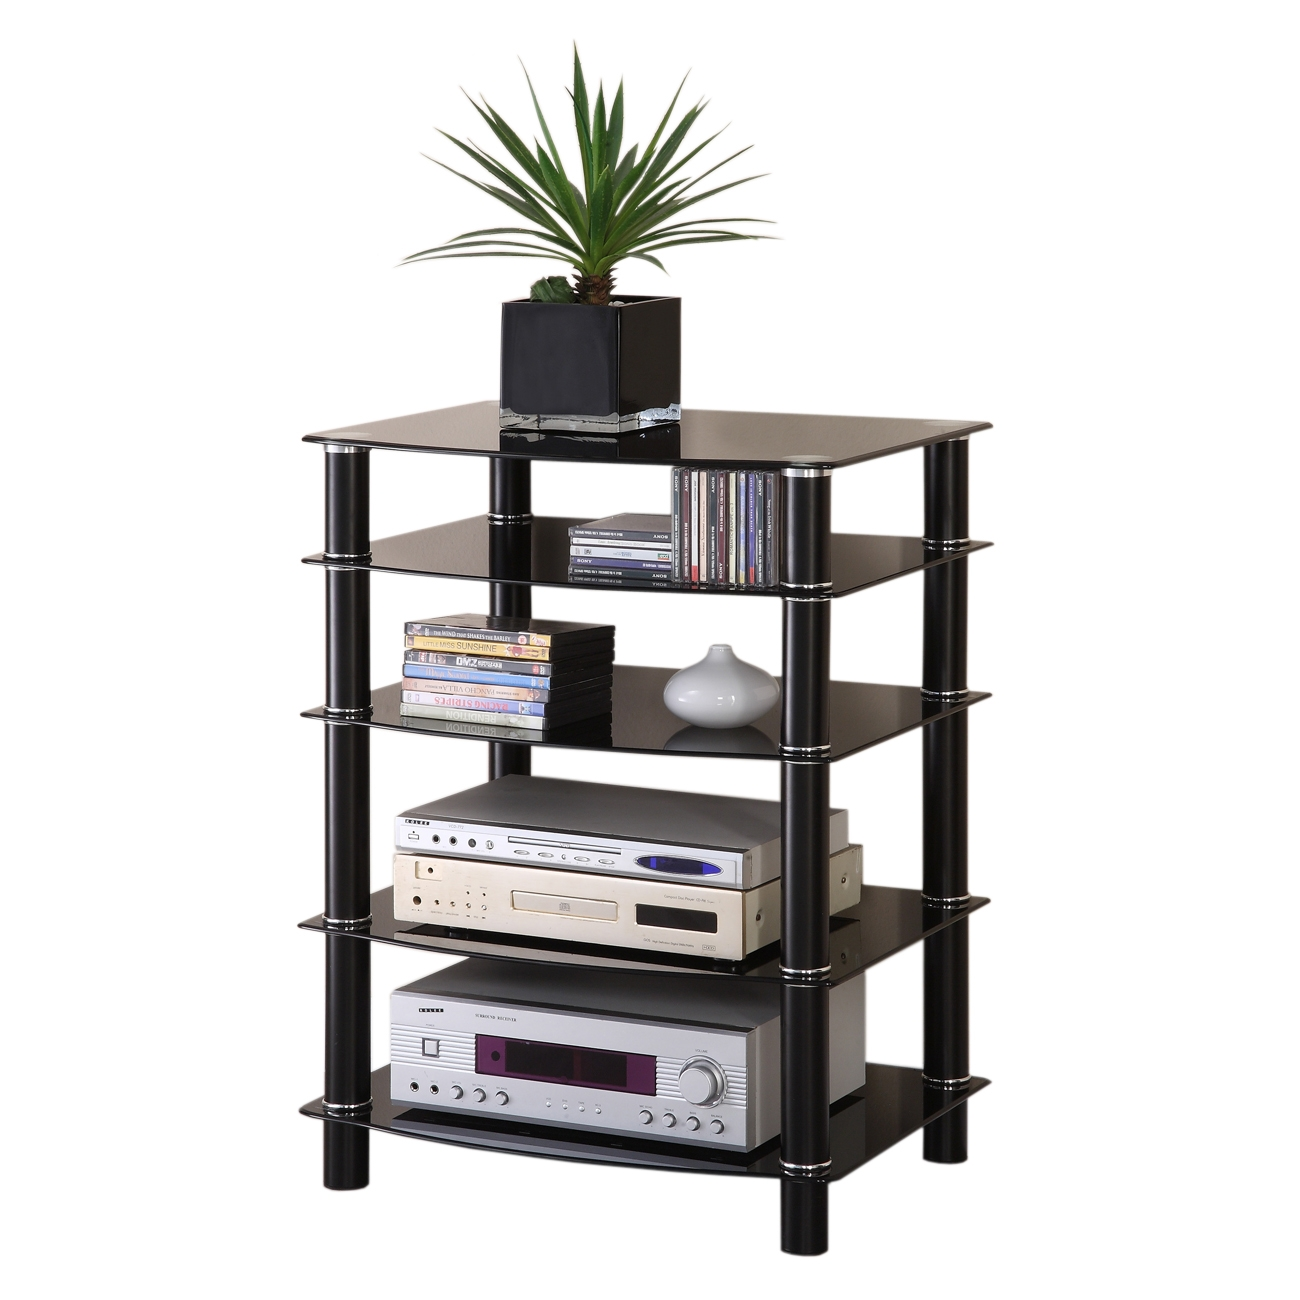 Stereo Component Storage Cabinetcomponent shelf stereo cabinet audio rack media storage component